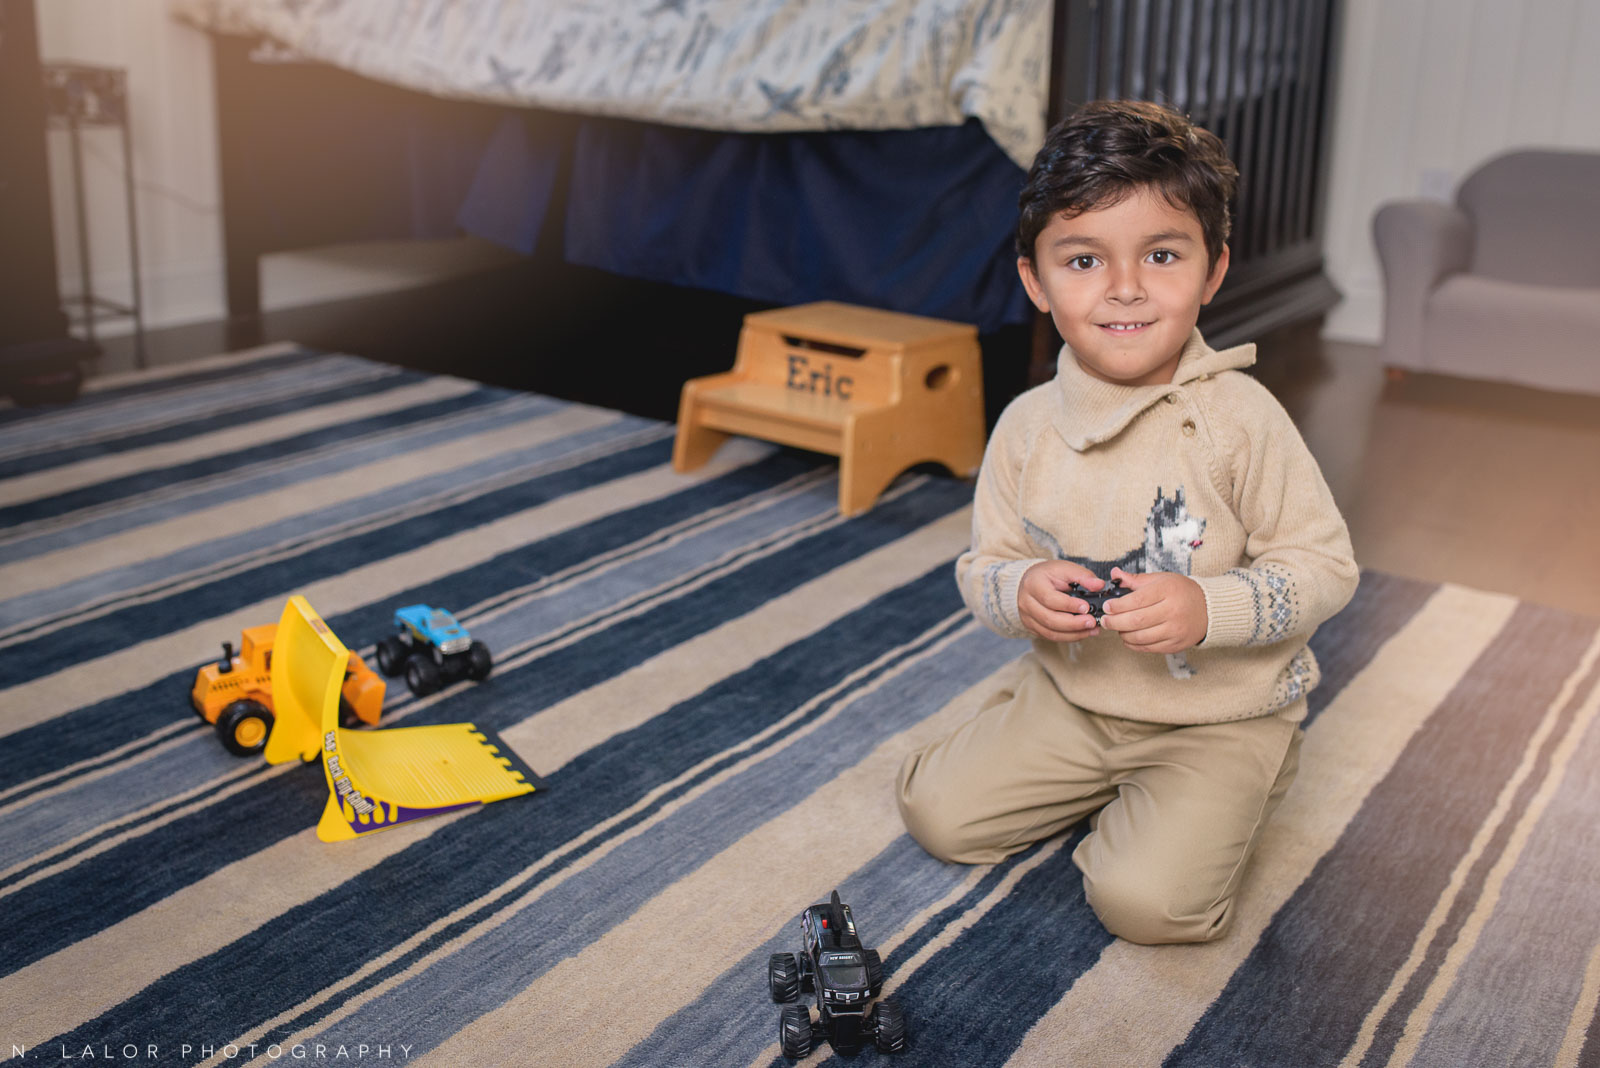 Boy playing with trucks in his room. Lifestyle portrait by N. Lalor Photography.